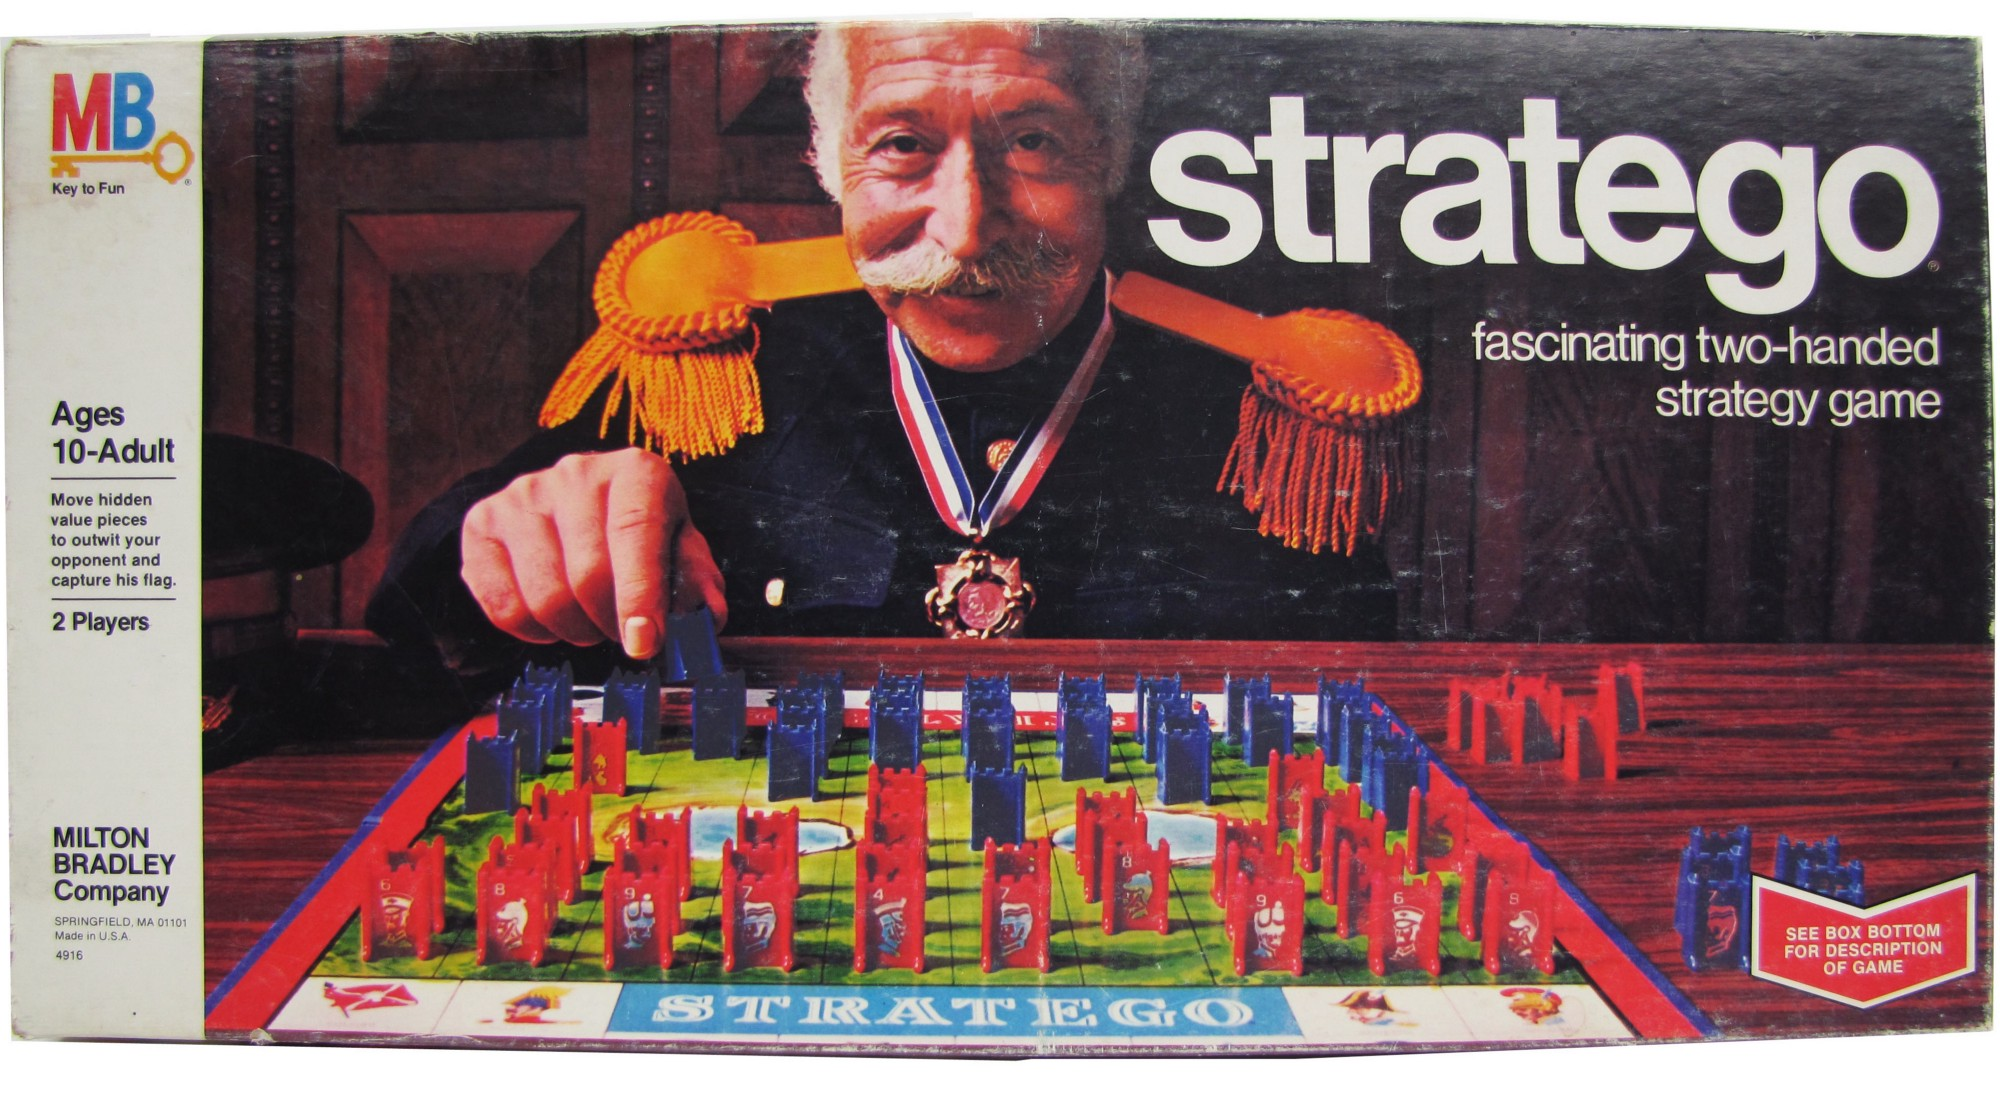 lessons in analytics from stratego creative analytics